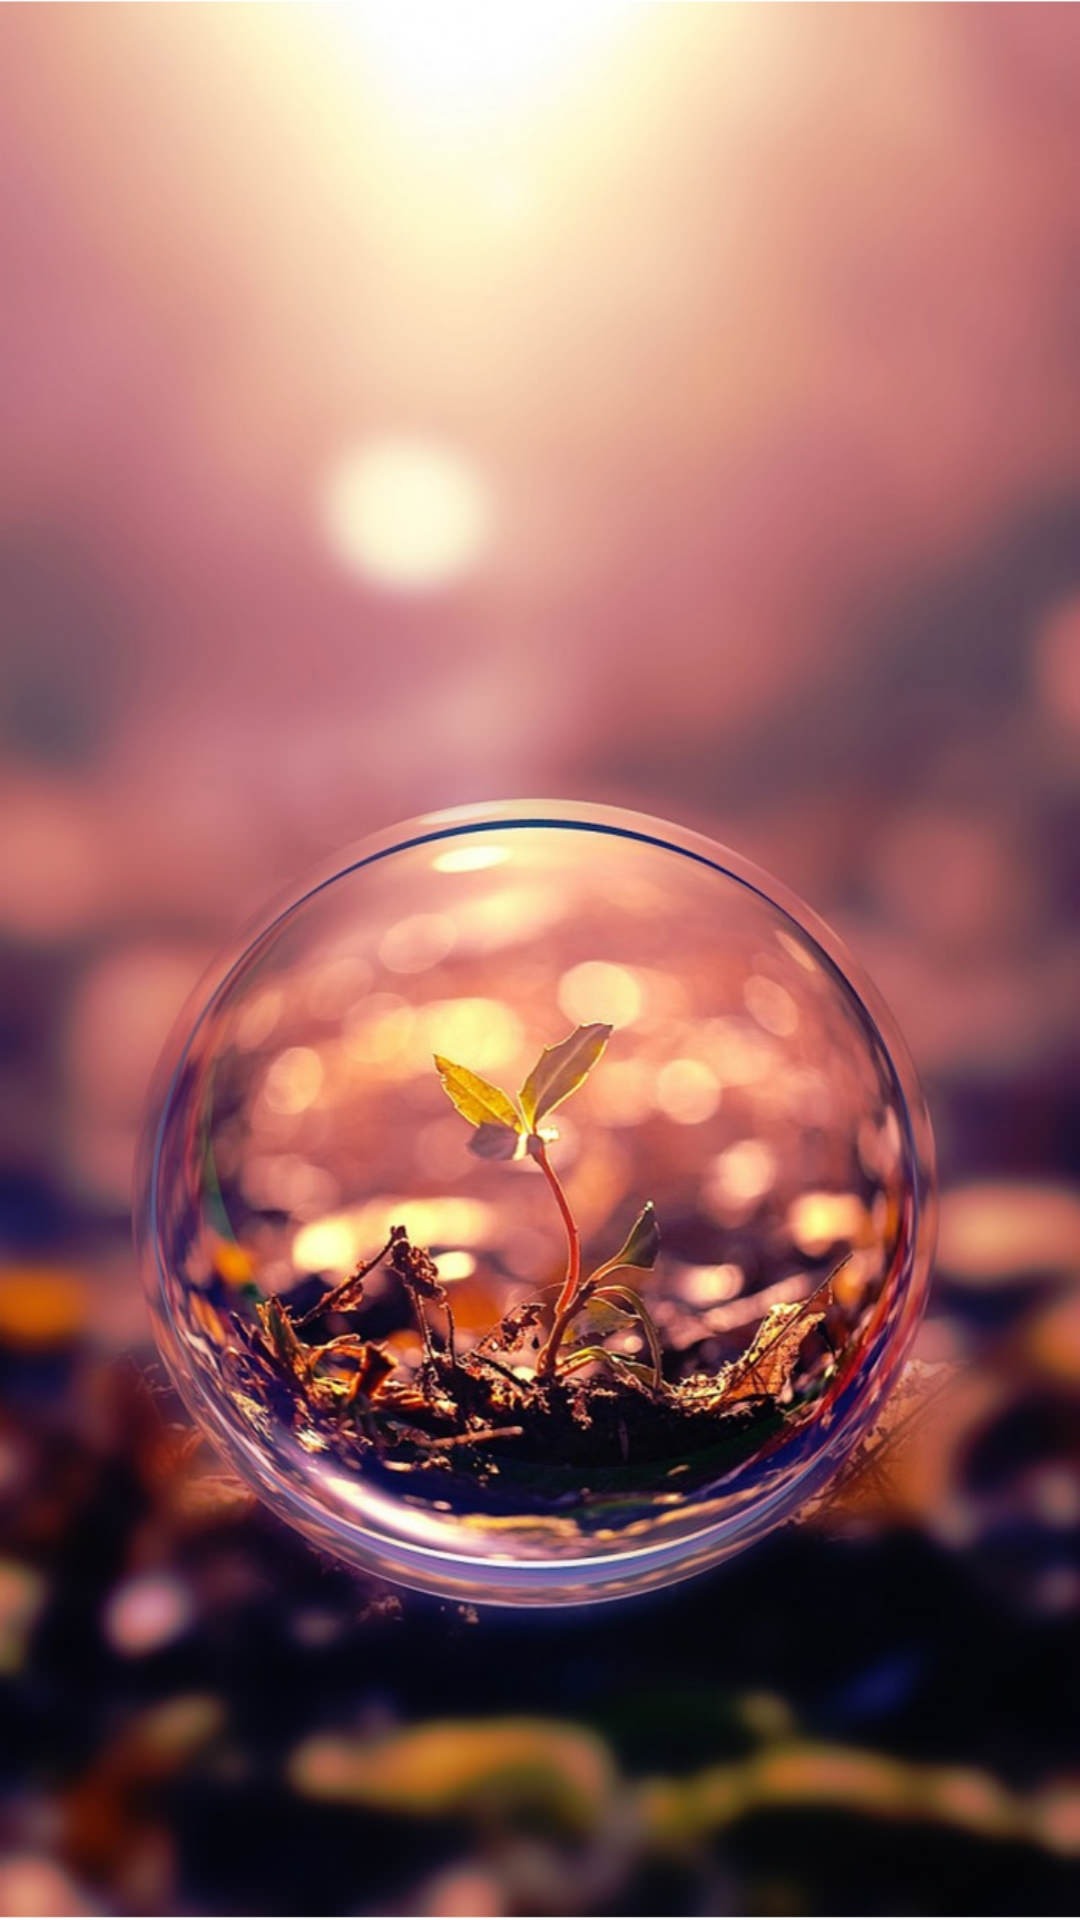 Beautiful Vintage Micro Photography Water Bubbled IPhone Wallpaper